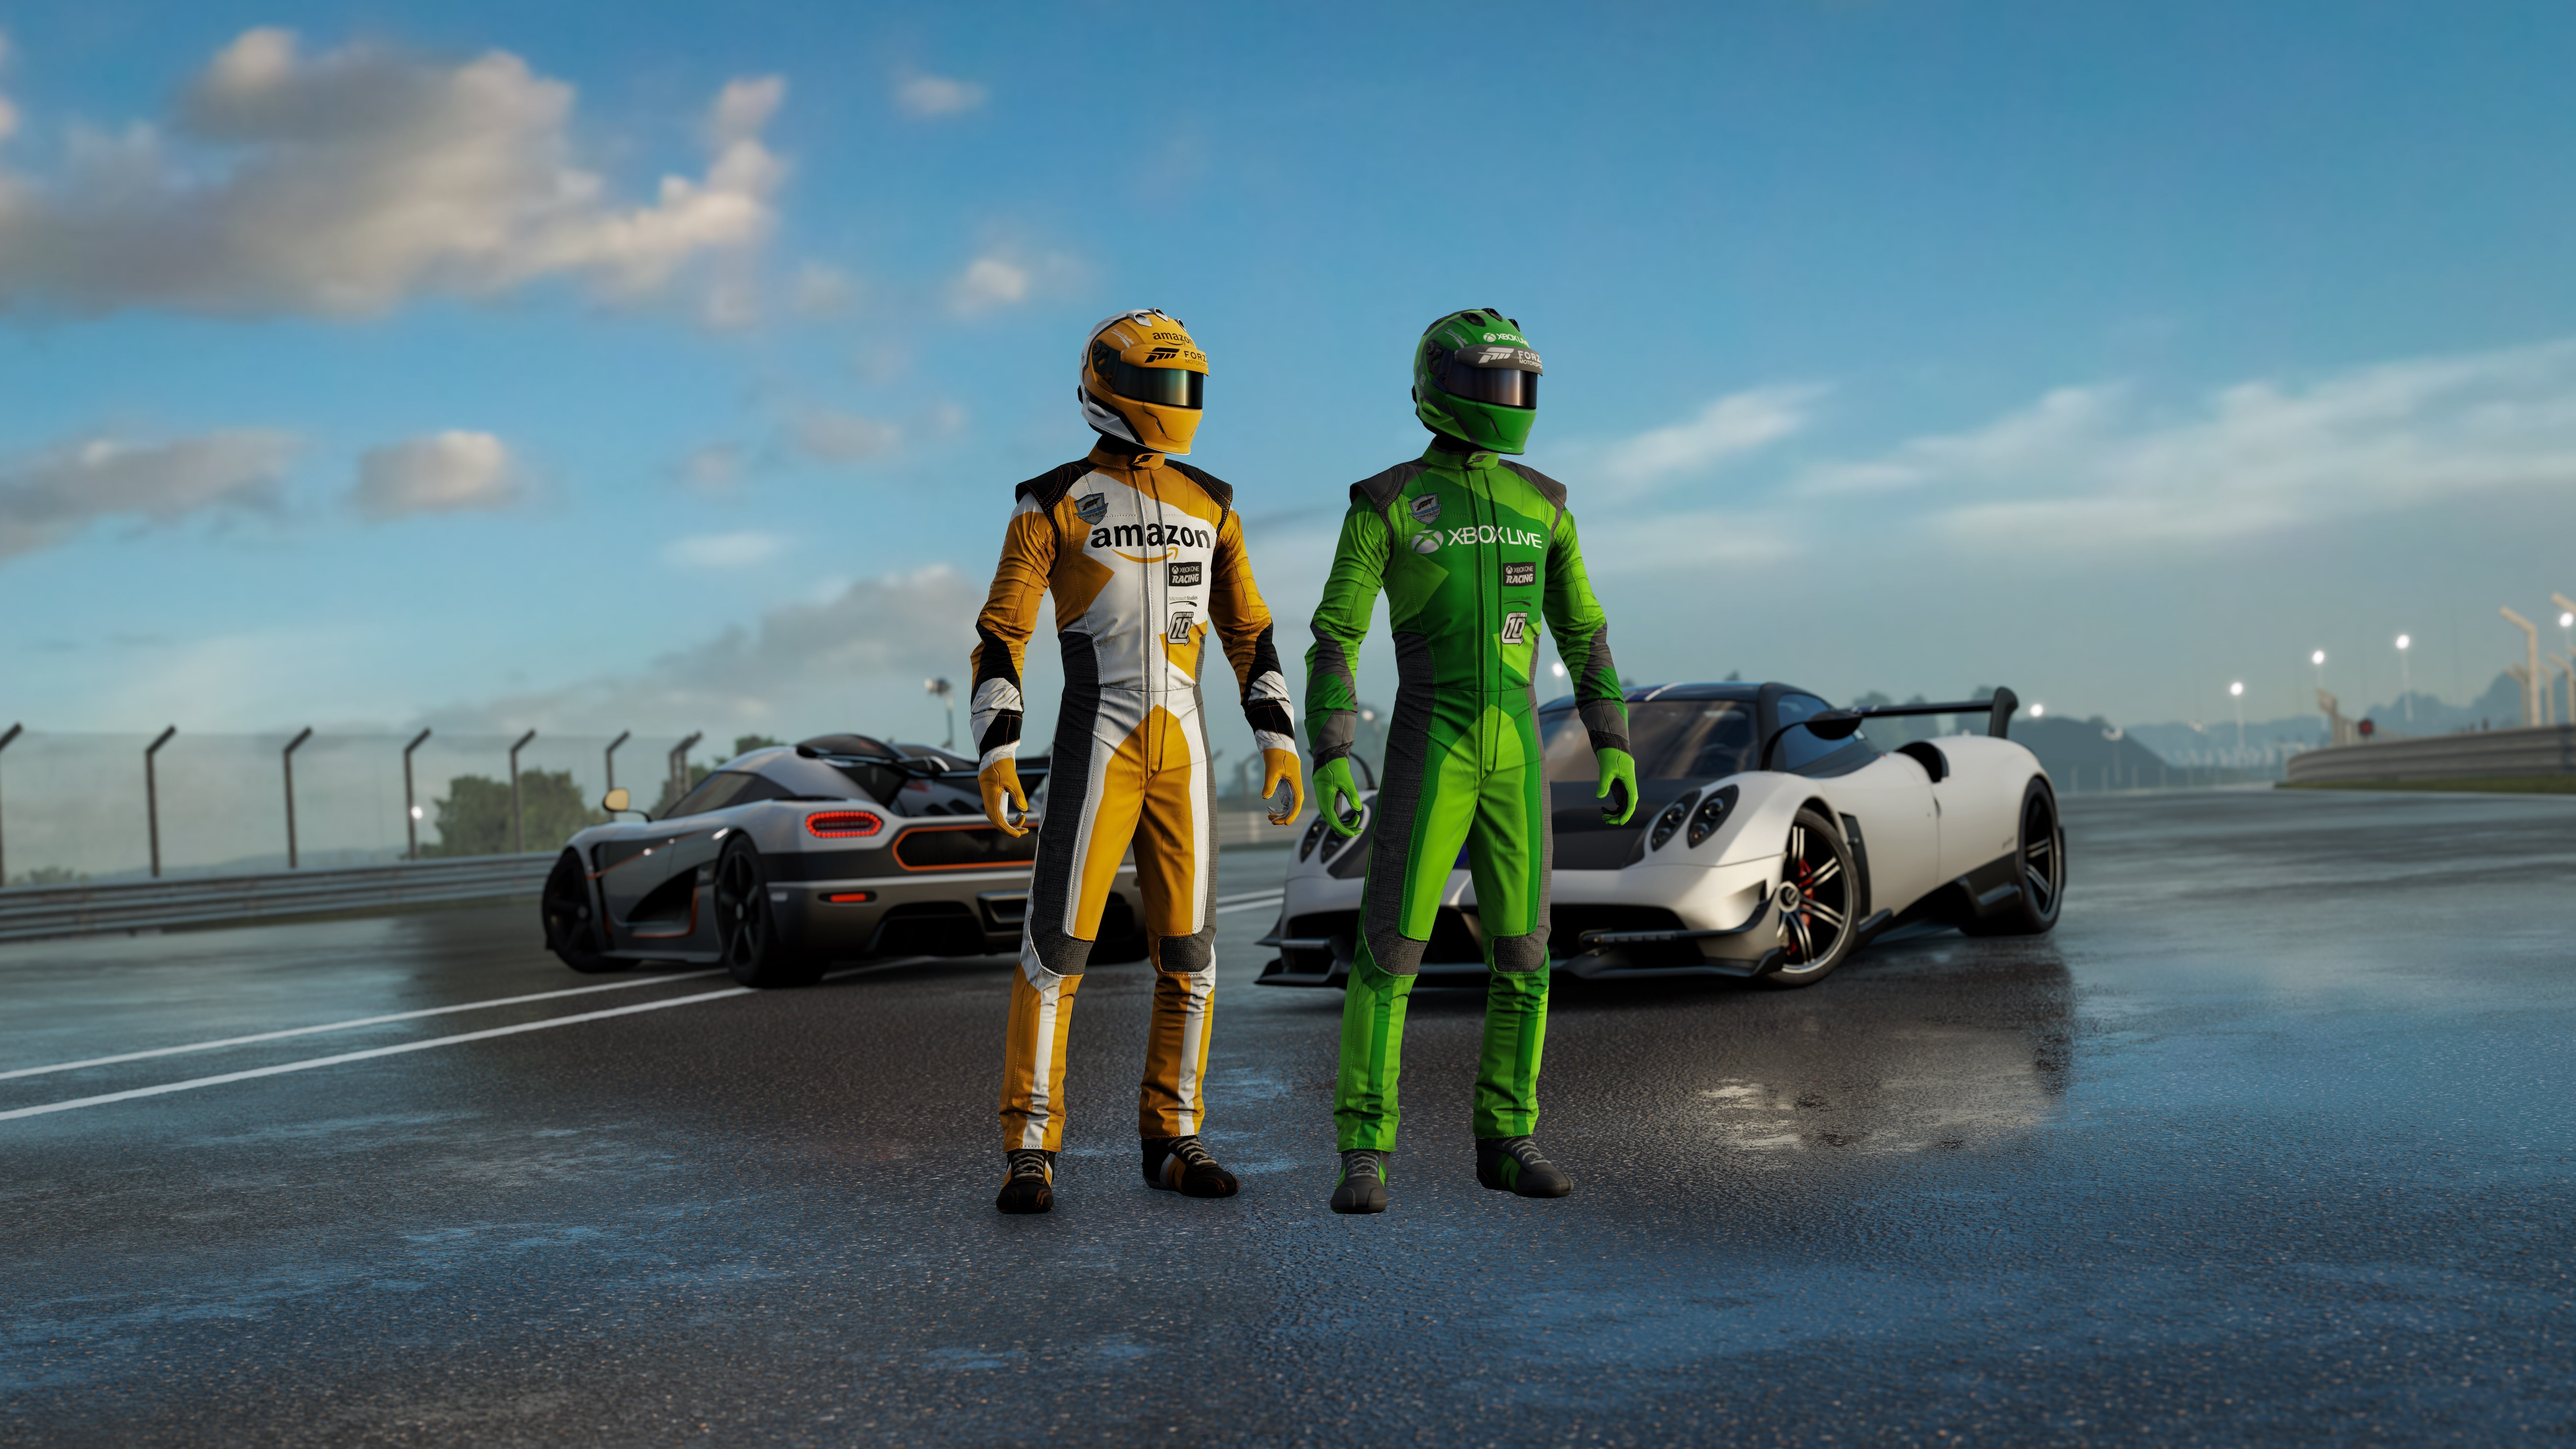 Forza Motorsport 7 Wallpapers Ultra Hd Gaming Backgrounds: 7680x4320 Forza Motorsport 7 Xbox One X 8k HD 4k